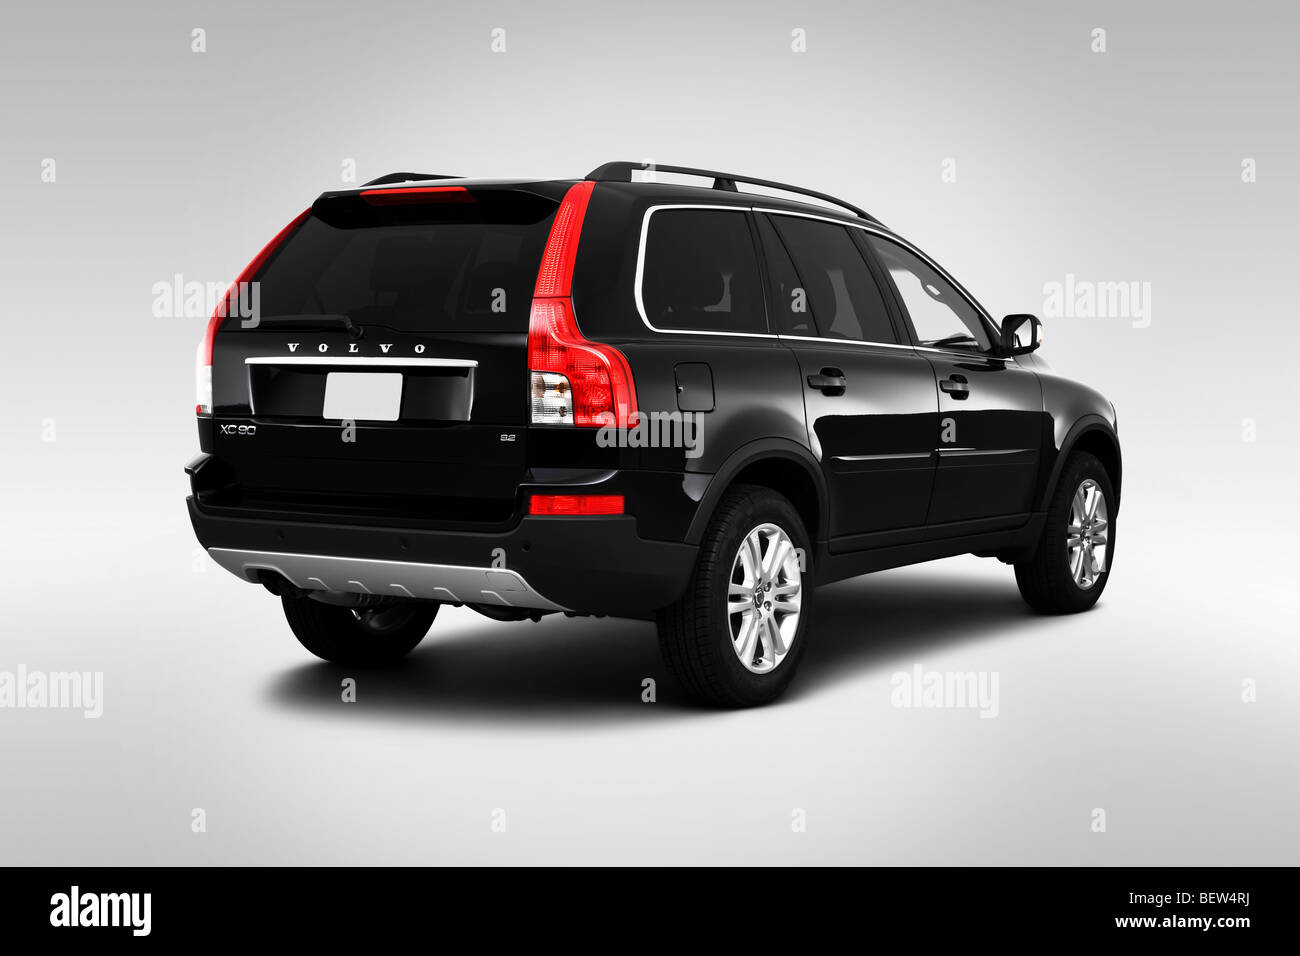 2010 volvo xc90 3 2 in black rear angle view